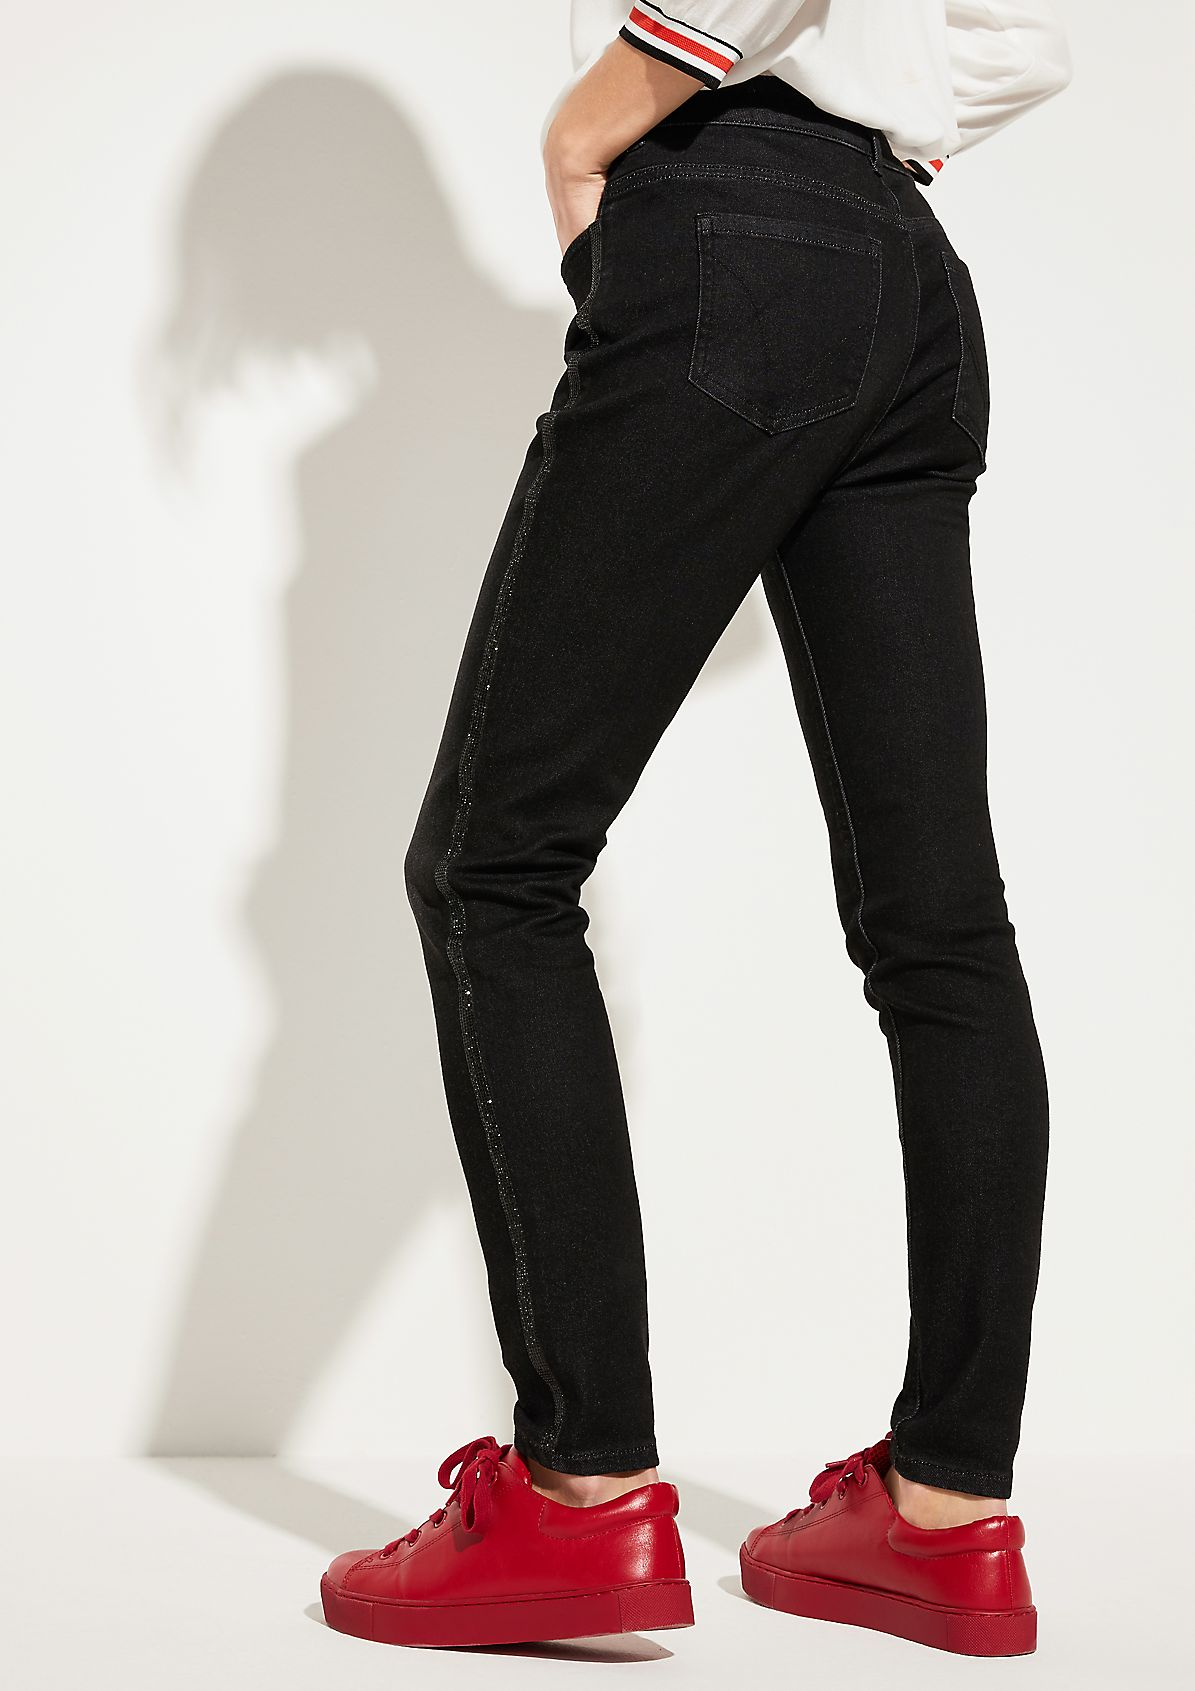 Skinny Fit: Dunkle Stretchjeans